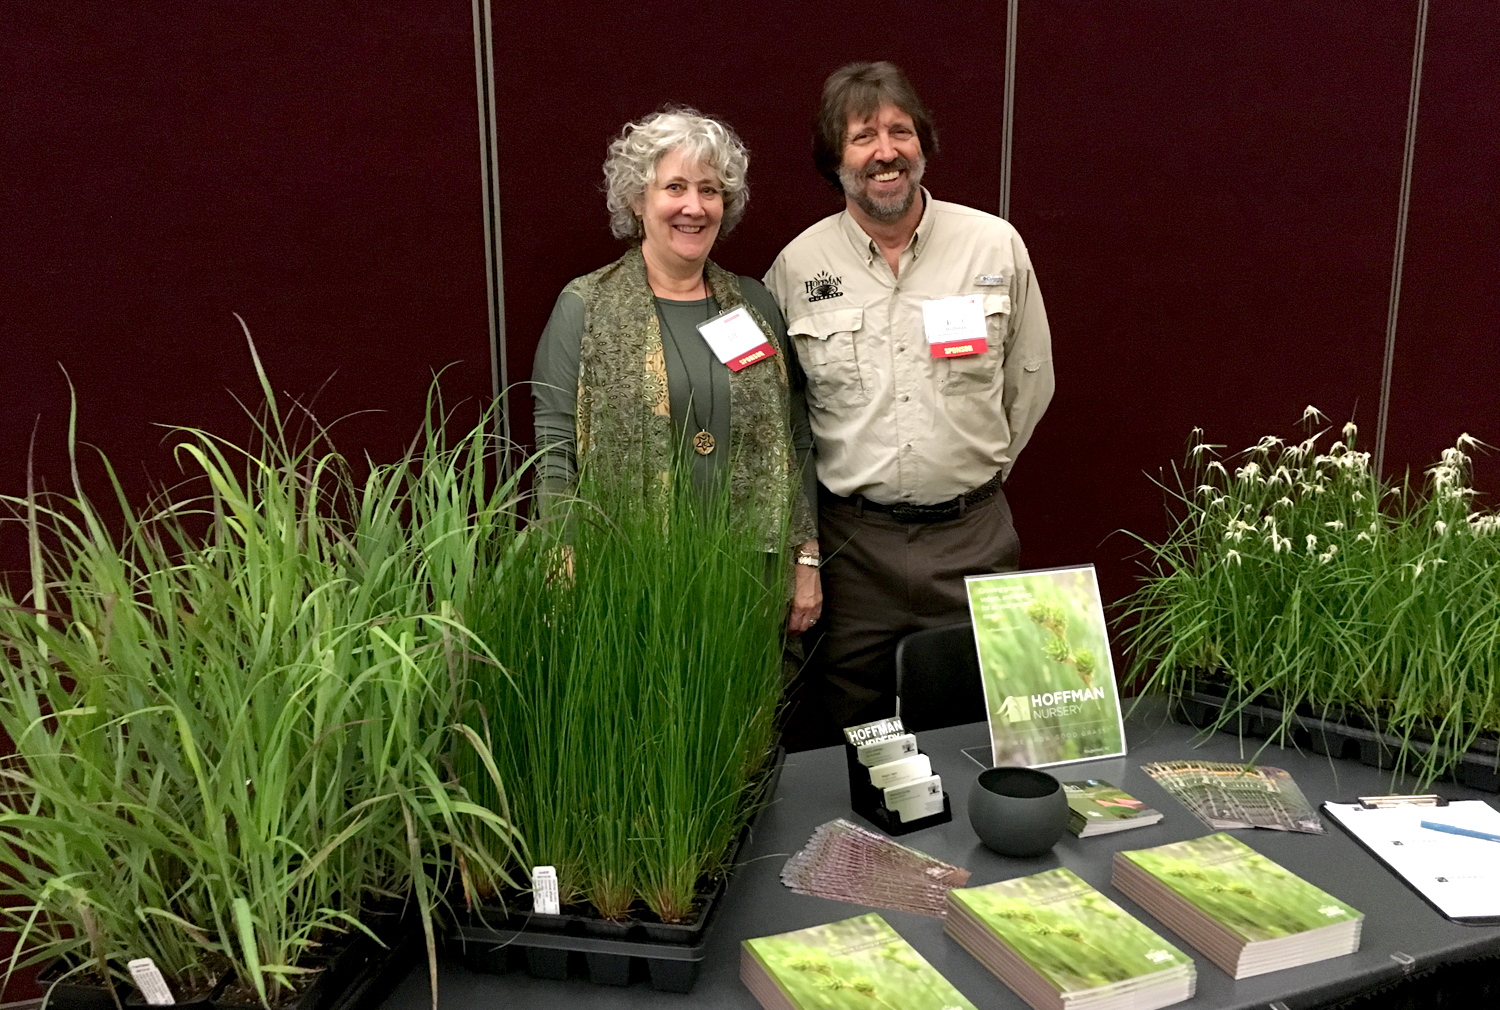 Jill and John Hoffman talked with attendees about the plants we're growing for green infrastructure. One of the most popular plants at the table was Star Sedge (Rhynchospora colorate), which was in full bloom.